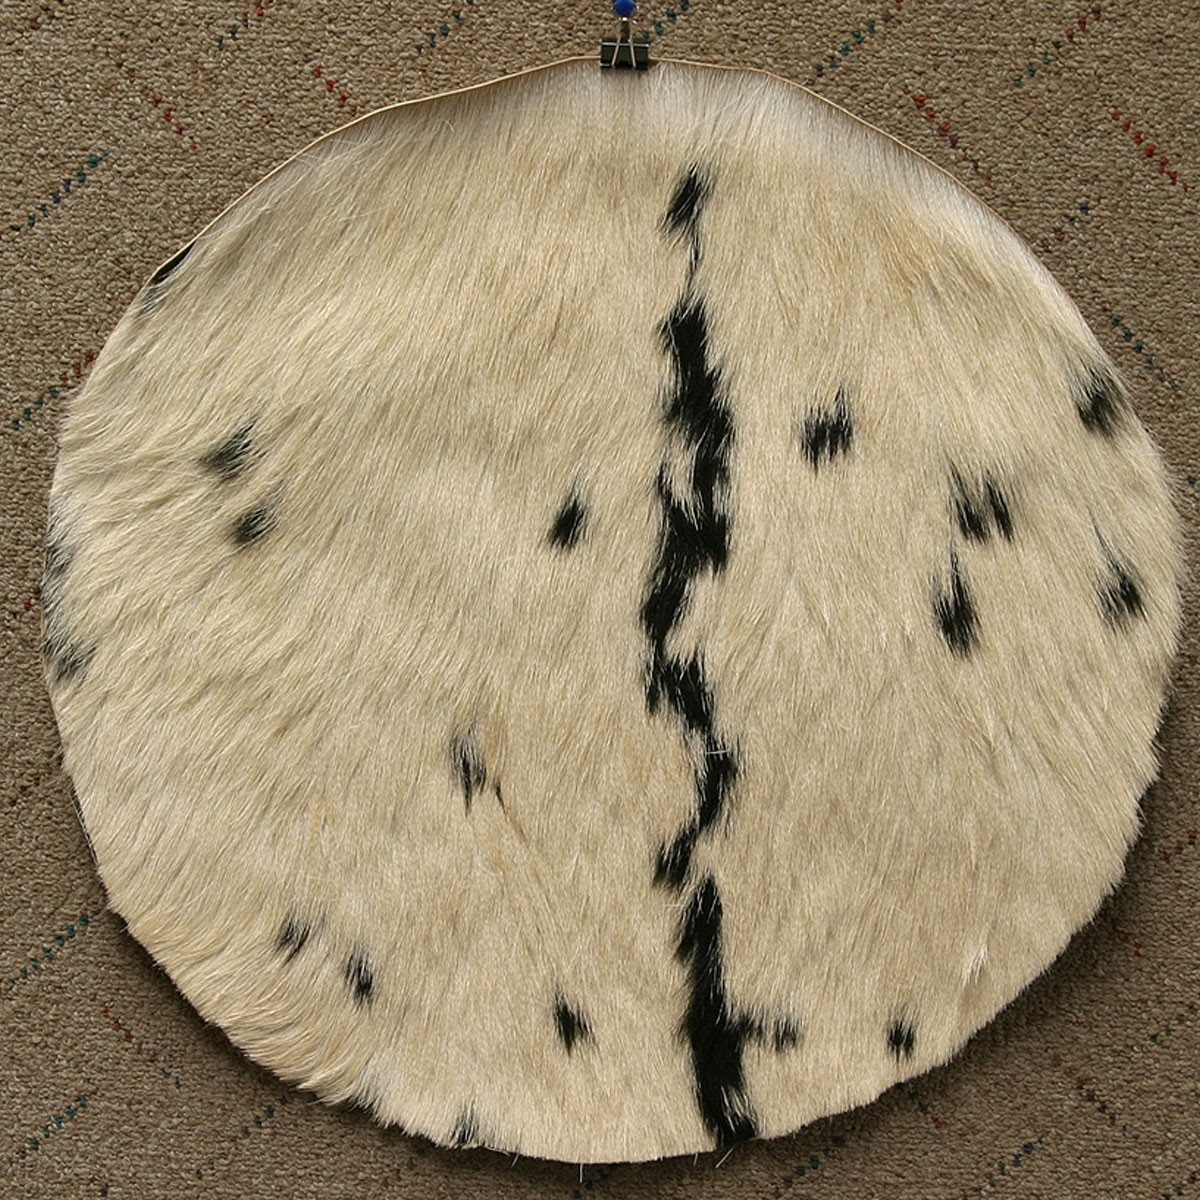 Goatskin w/ Hair 18' - Medium